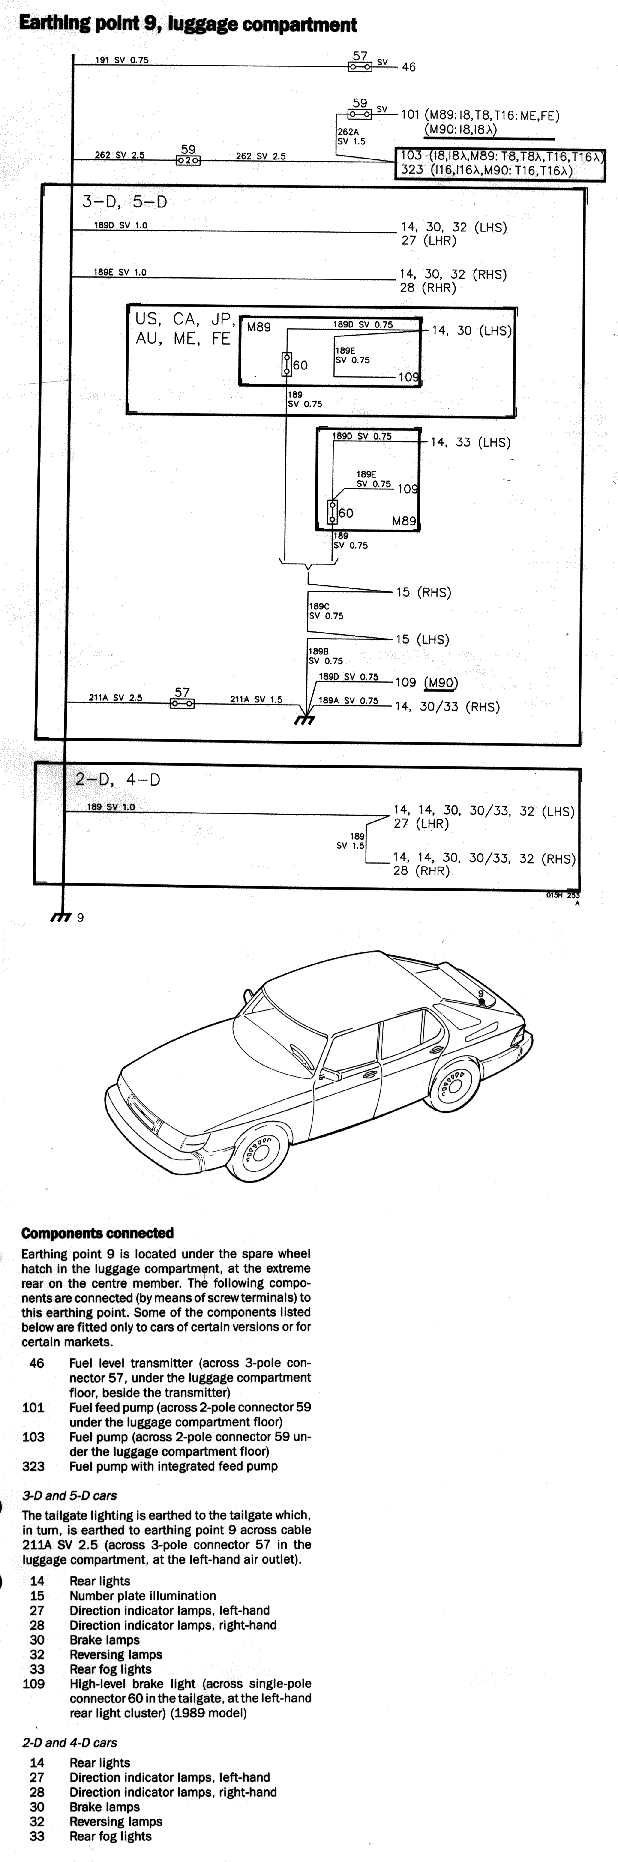 Electrical 900 89 90 Saab 93 Rear Light Wiring Diagram 34 Earthing Point Amplifier And 300 Brake Unit 1989 Model 36 117 Between The Ignition Switch